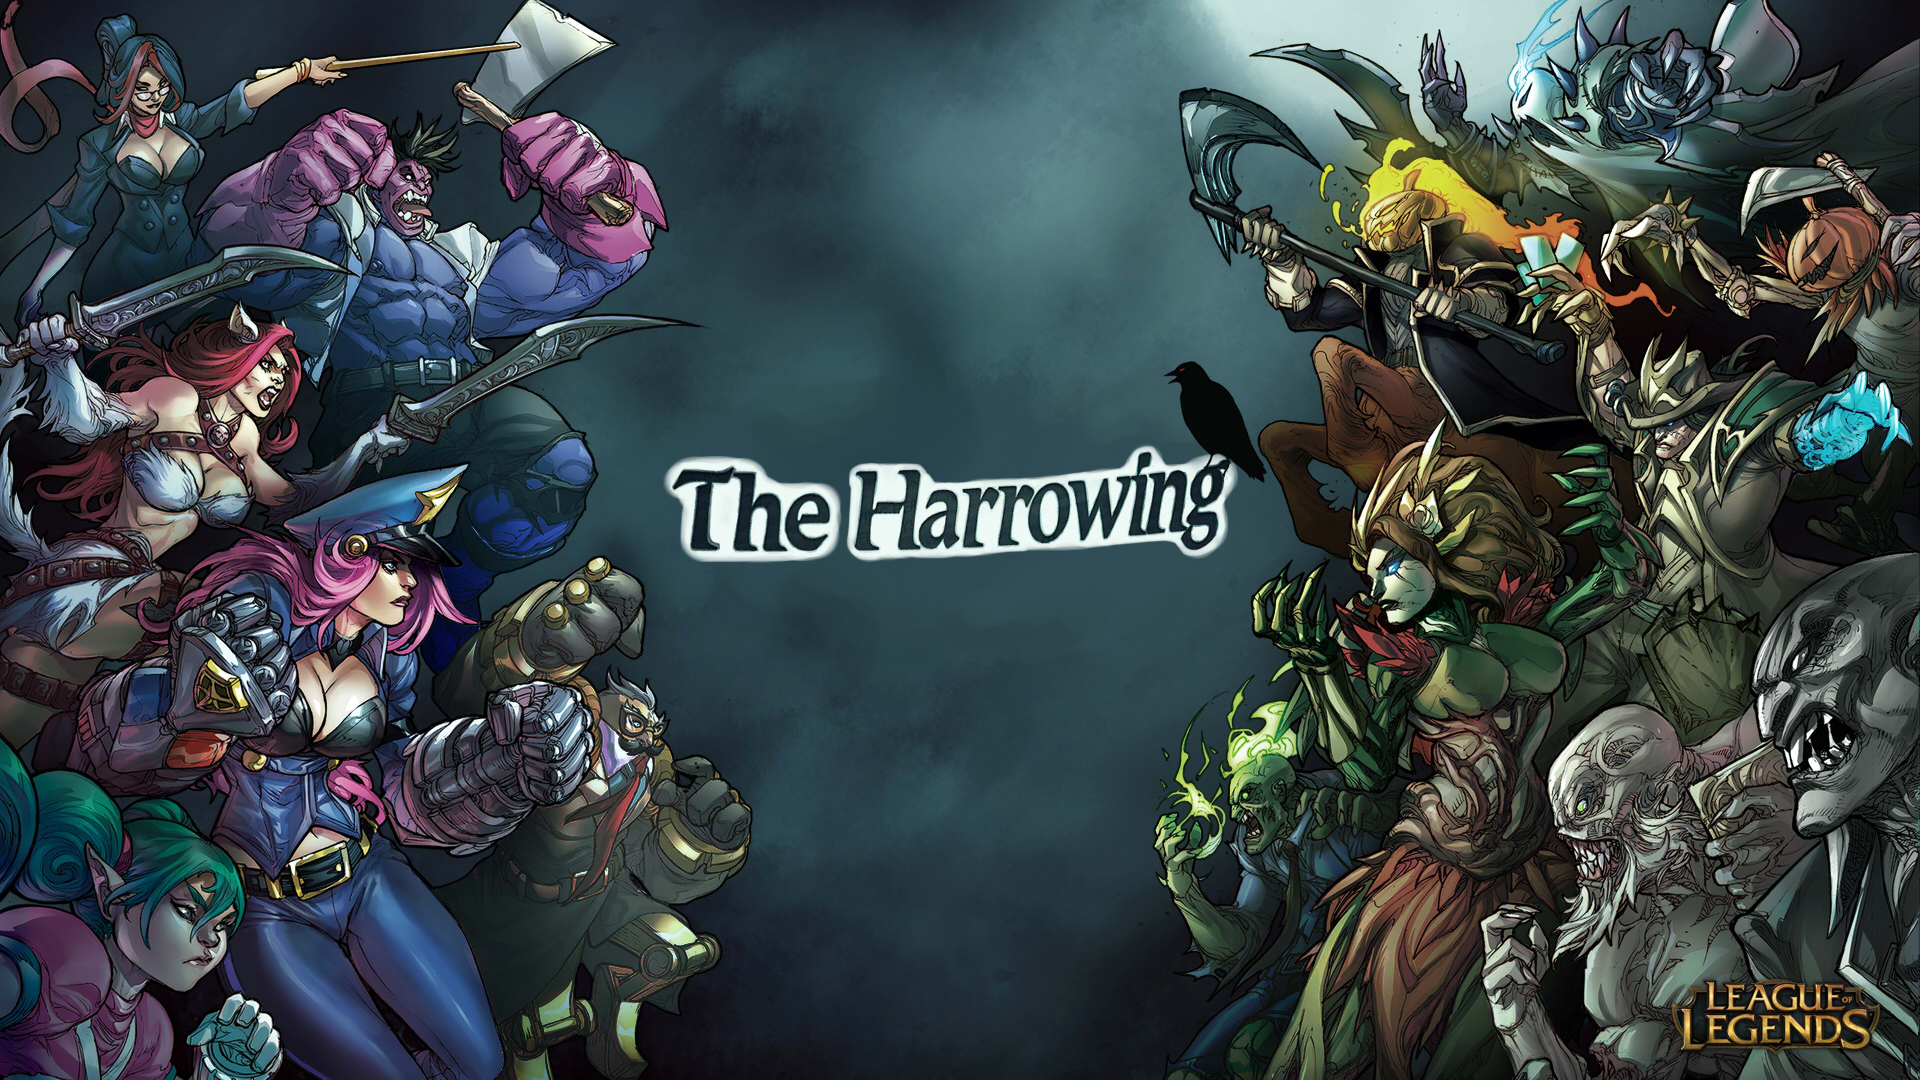 Harrowing | League of Legends Wiki | FANDOM powered by Wikia